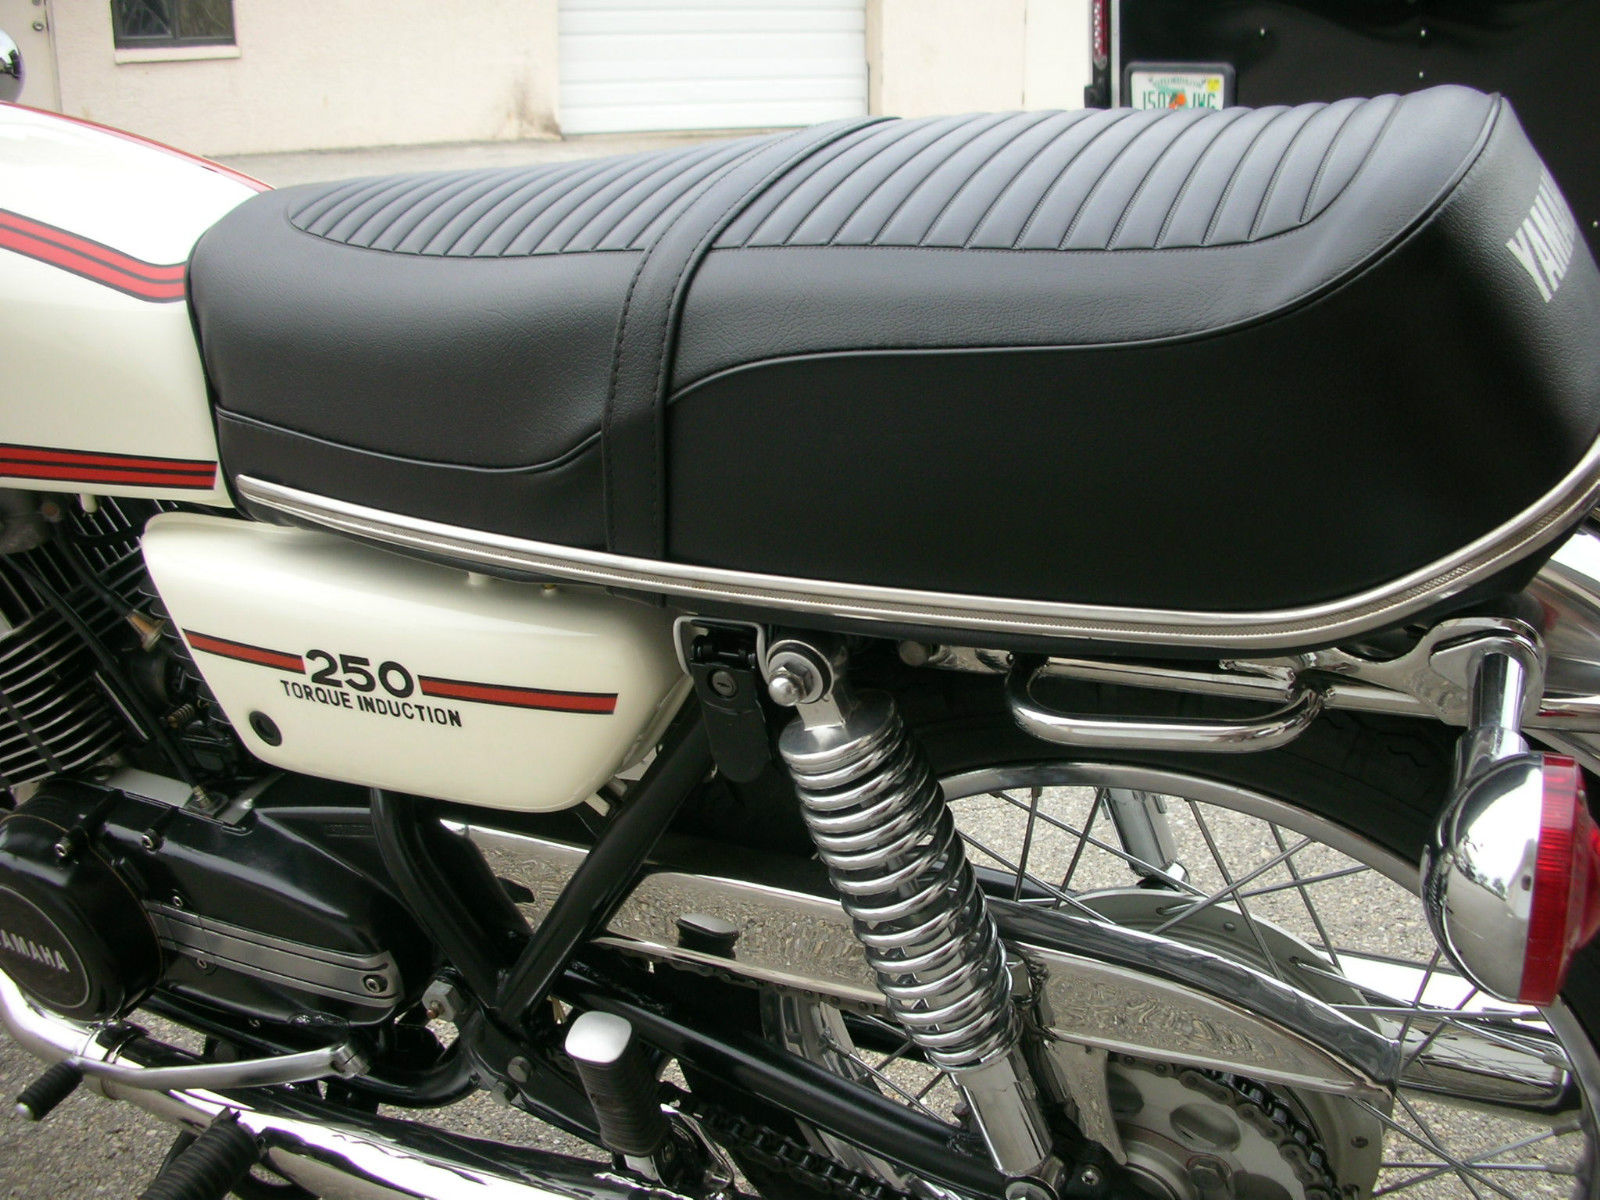 Yamaha RD250B - 1975 - Seat, Side panel and Shock Absorber.